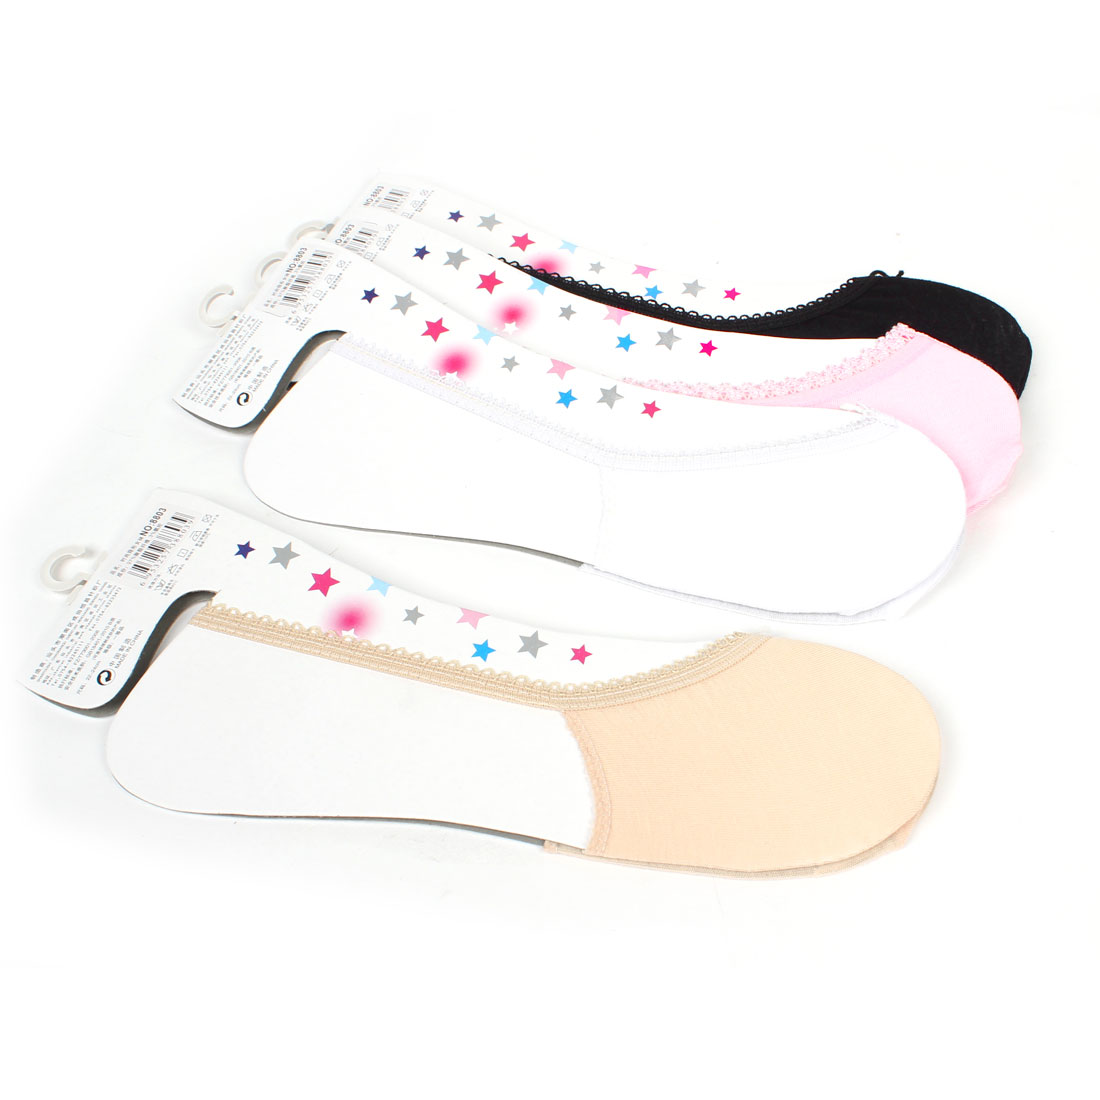 4 Pair Colored Invisible Non Slip Lace Edge Cotton Socks for Ladies Women